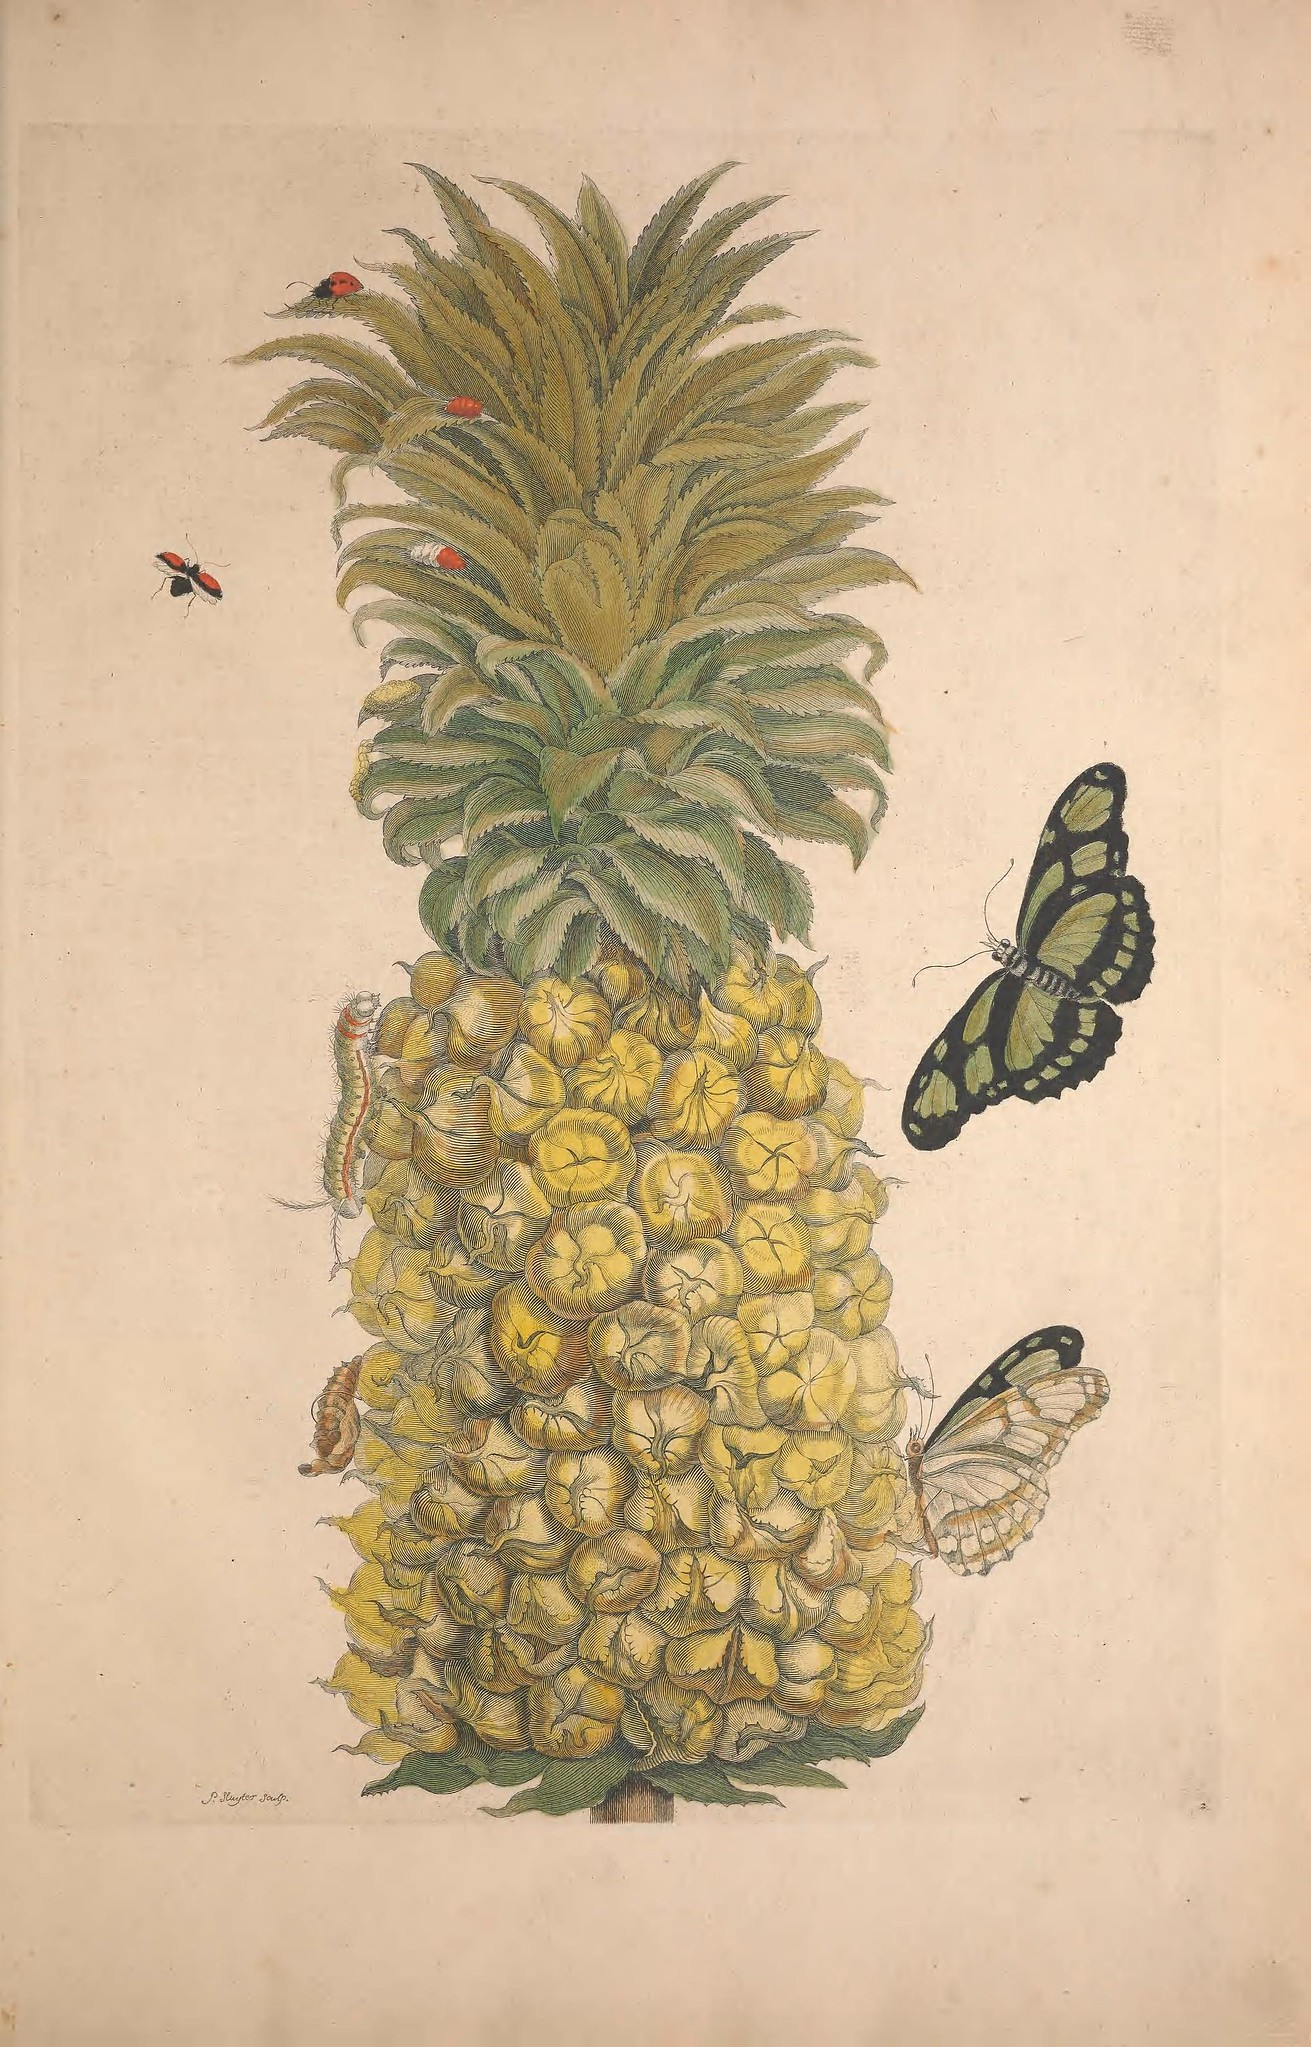 illustration of a pineapple with butterflies